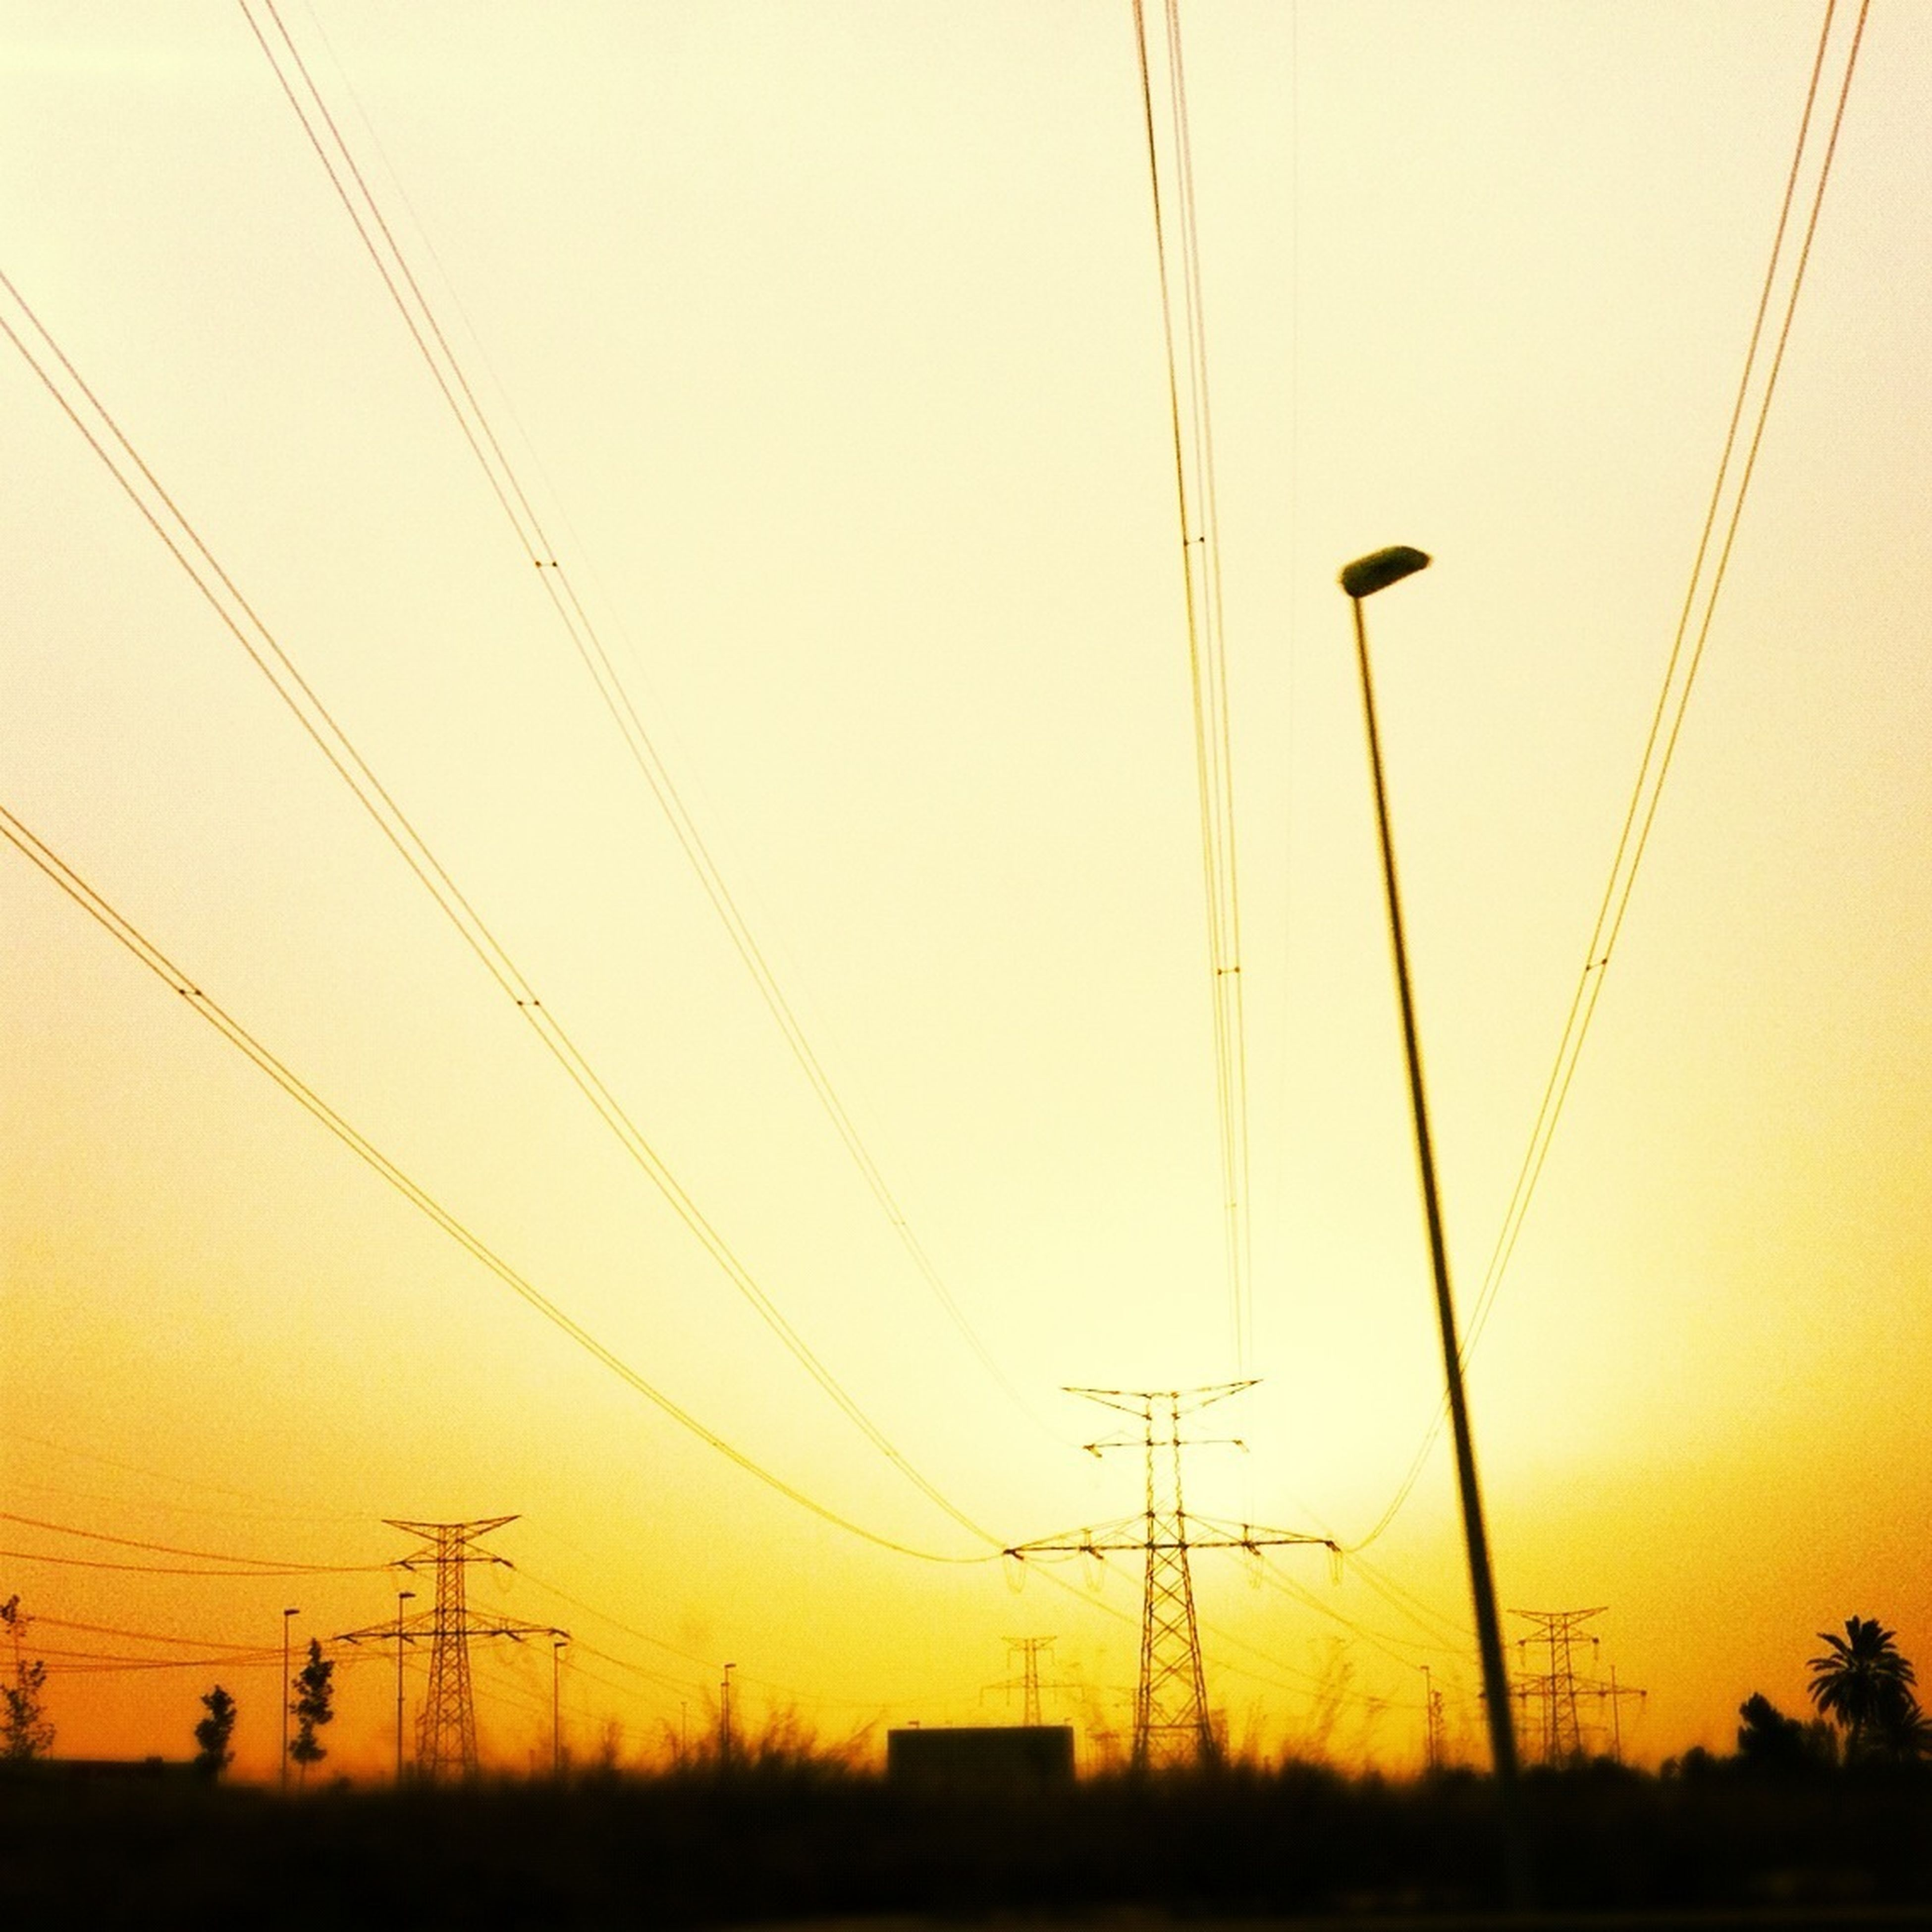 power line, electricity pylon, power supply, electricity, sunset, connection, cable, fuel and power generation, silhouette, technology, low angle view, power cable, sky, orange color, no people, nature, outdoors, telephone pole, scenics, tranquility